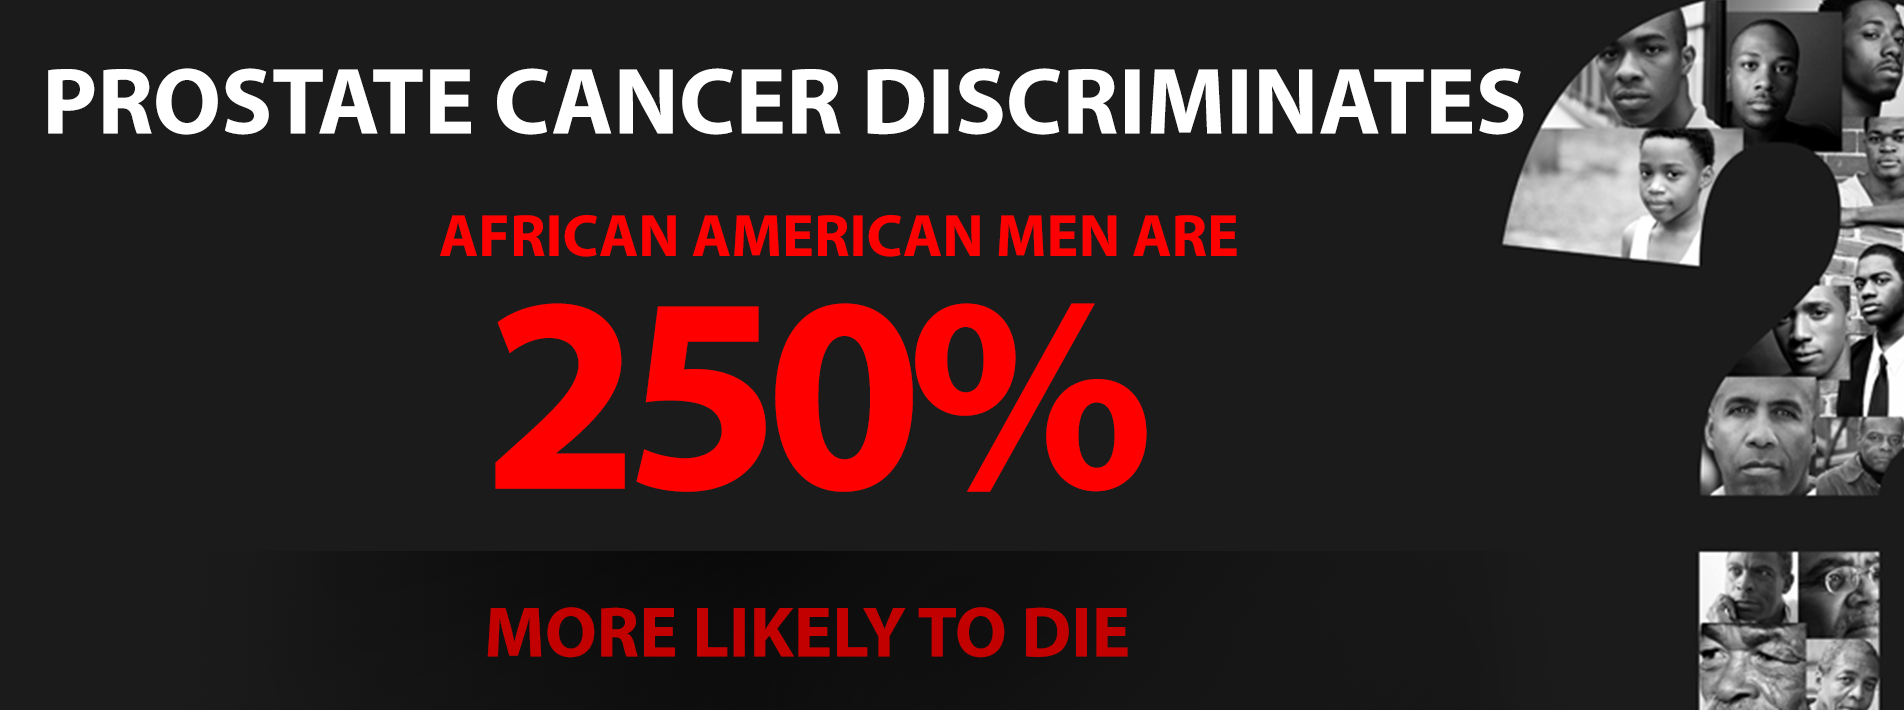 prostate cancer in african american men 2 essay Morris is of african descent, and african-american men are the group - out of all men in the world - hardest hit by prostate cancer that puts him in a high-risk group of men who need to start screening for prostate cancer at age 40.